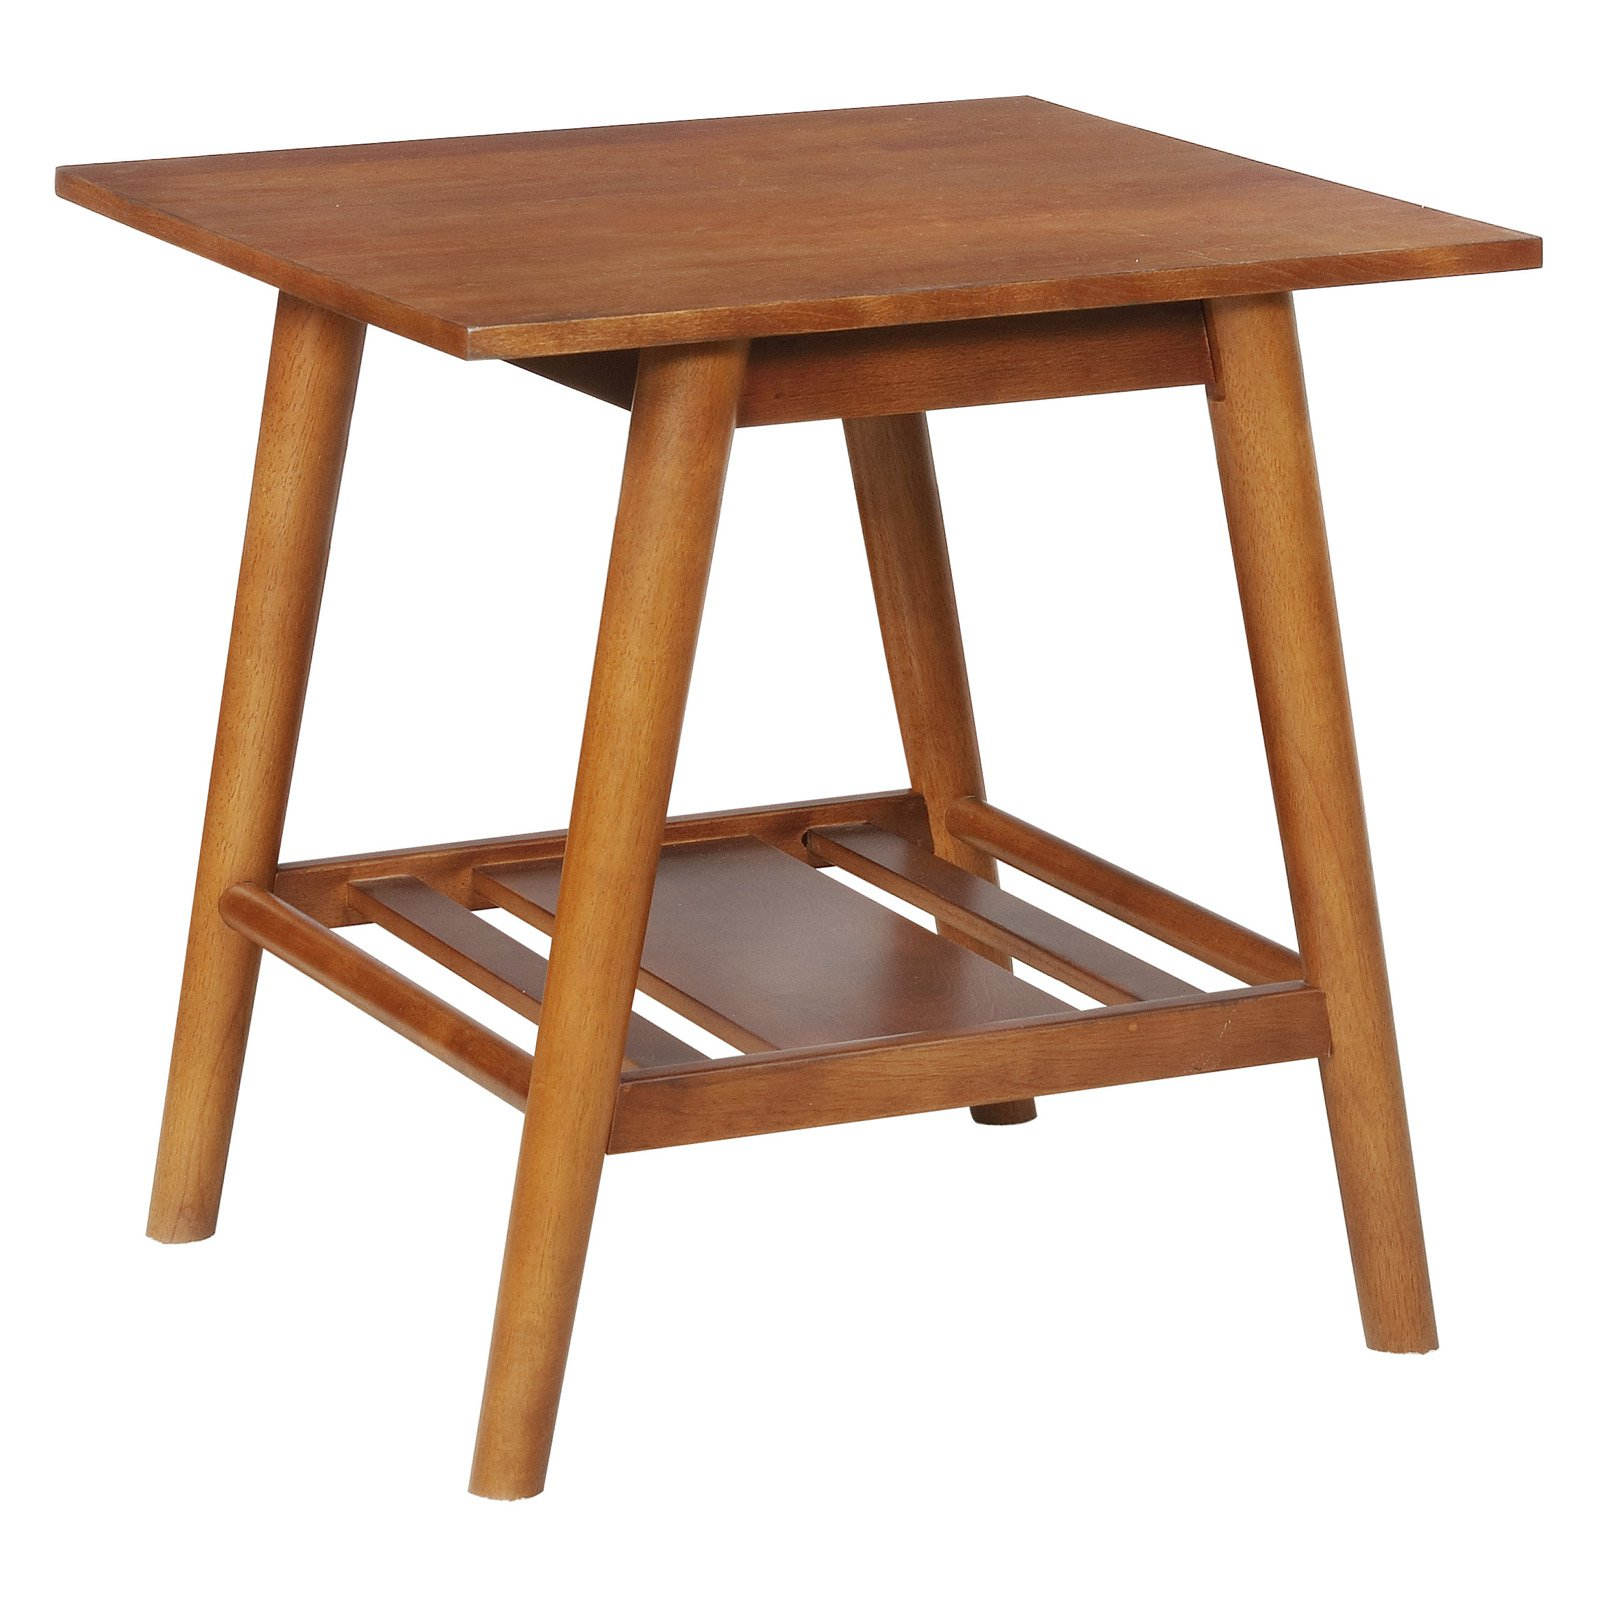 Linon Charlotte End Table, Brown, 22 inches Tall